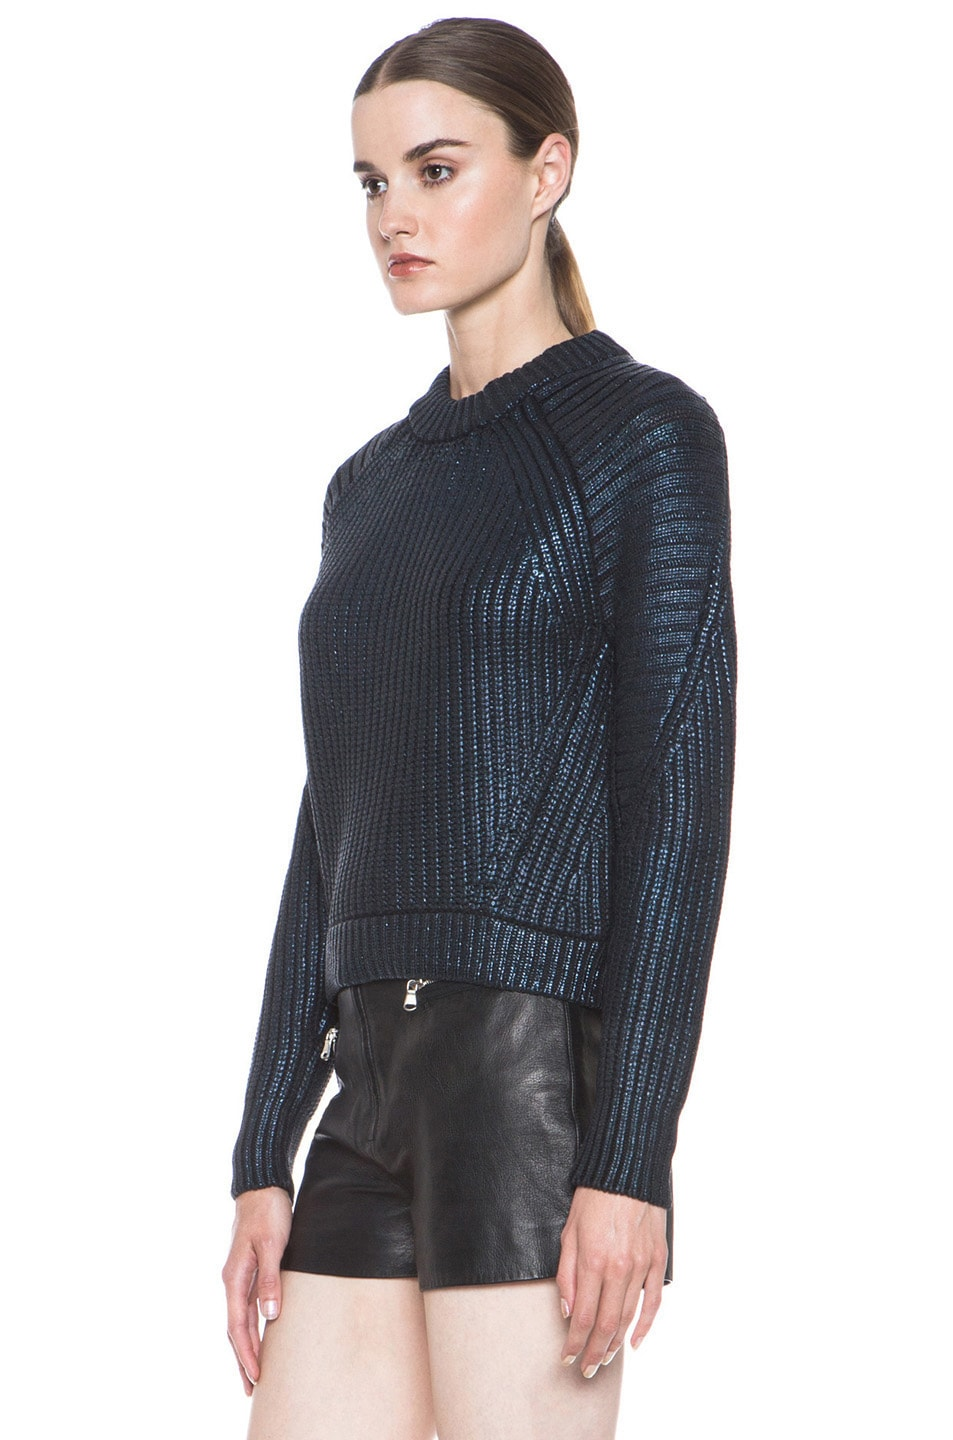 Image 2 of 3.1 phillip lim Metallic Printed Mixed Stitch Detail Knit Pullover in Sapphire